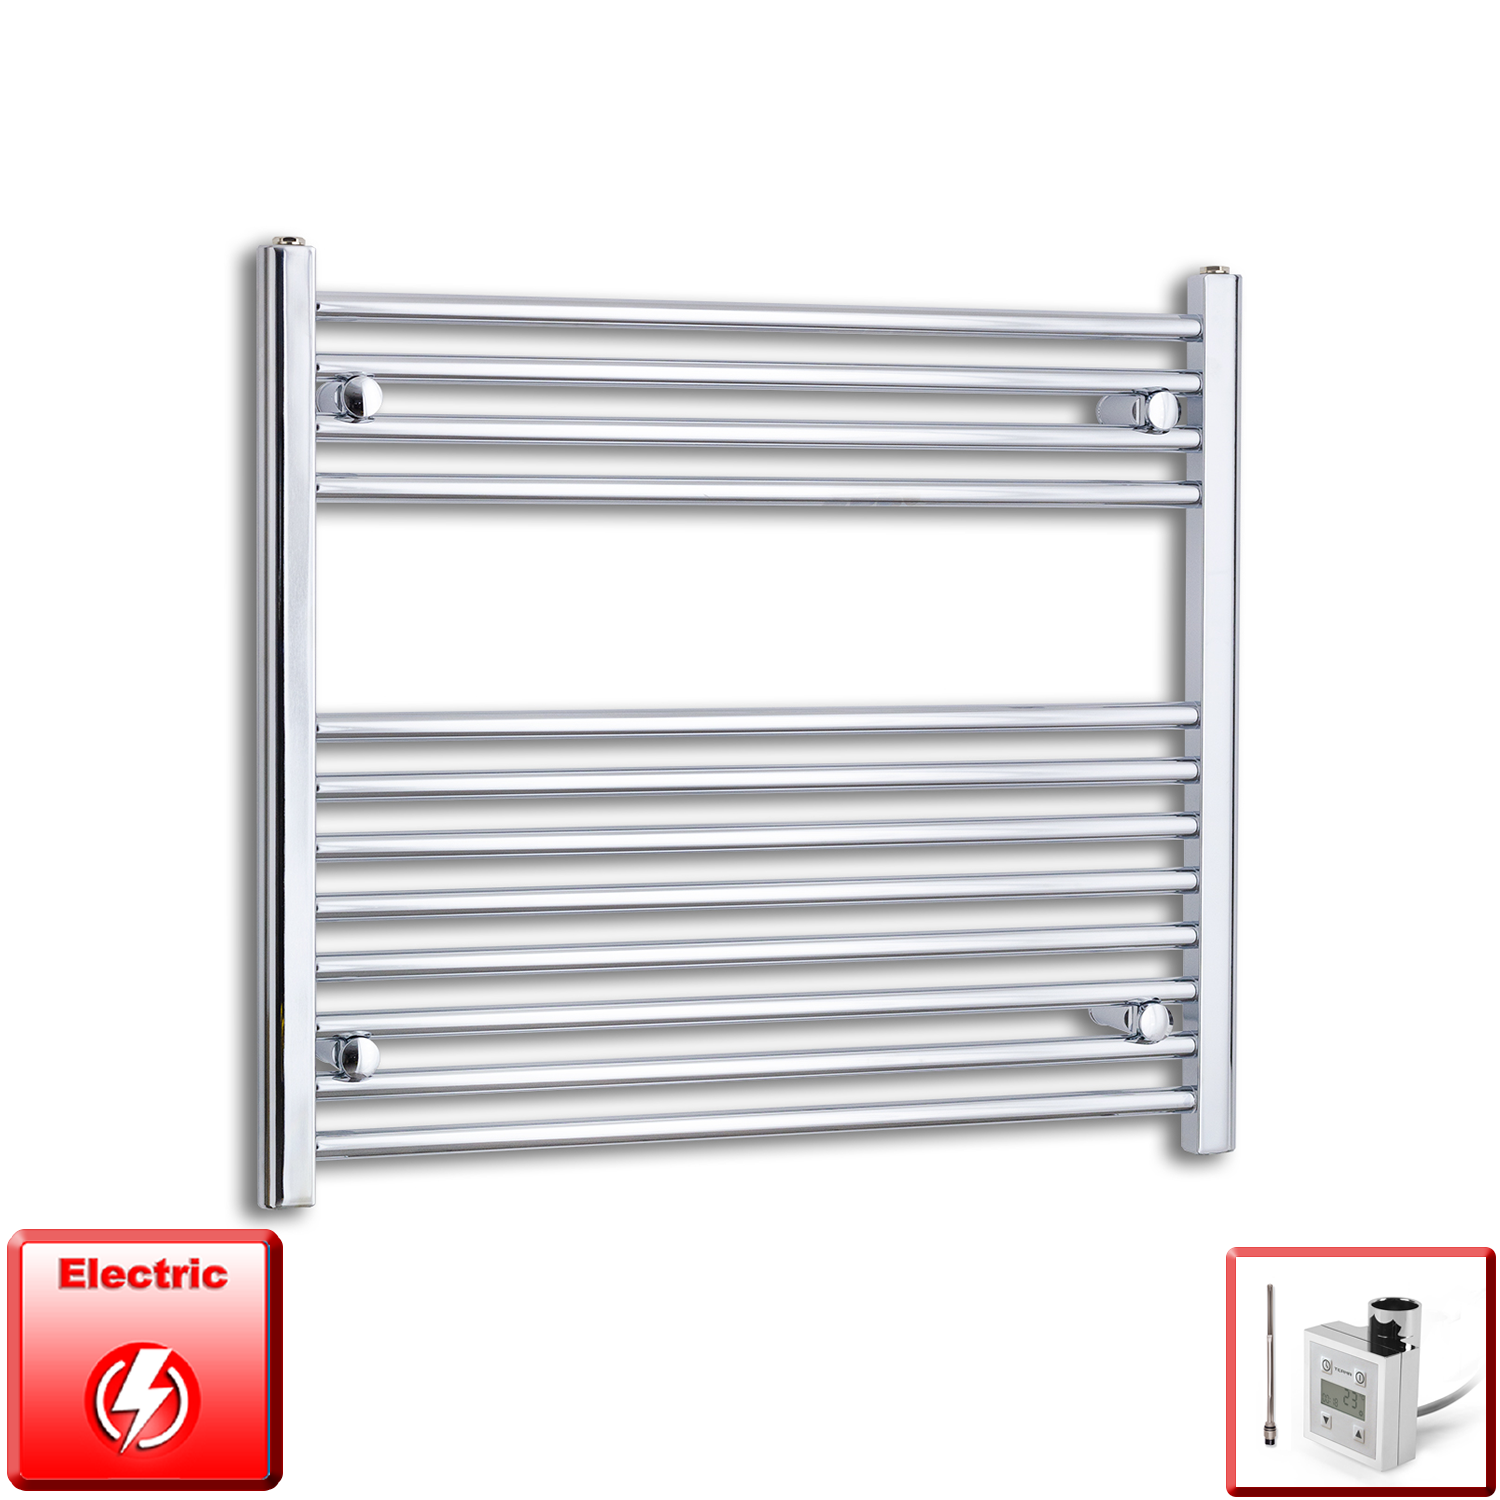 800mm Wide 700mm High Flat Chrome Pre-Filled Electric Heated Towel Rail Radiator HTR,KTX-3 Thermostatic Element